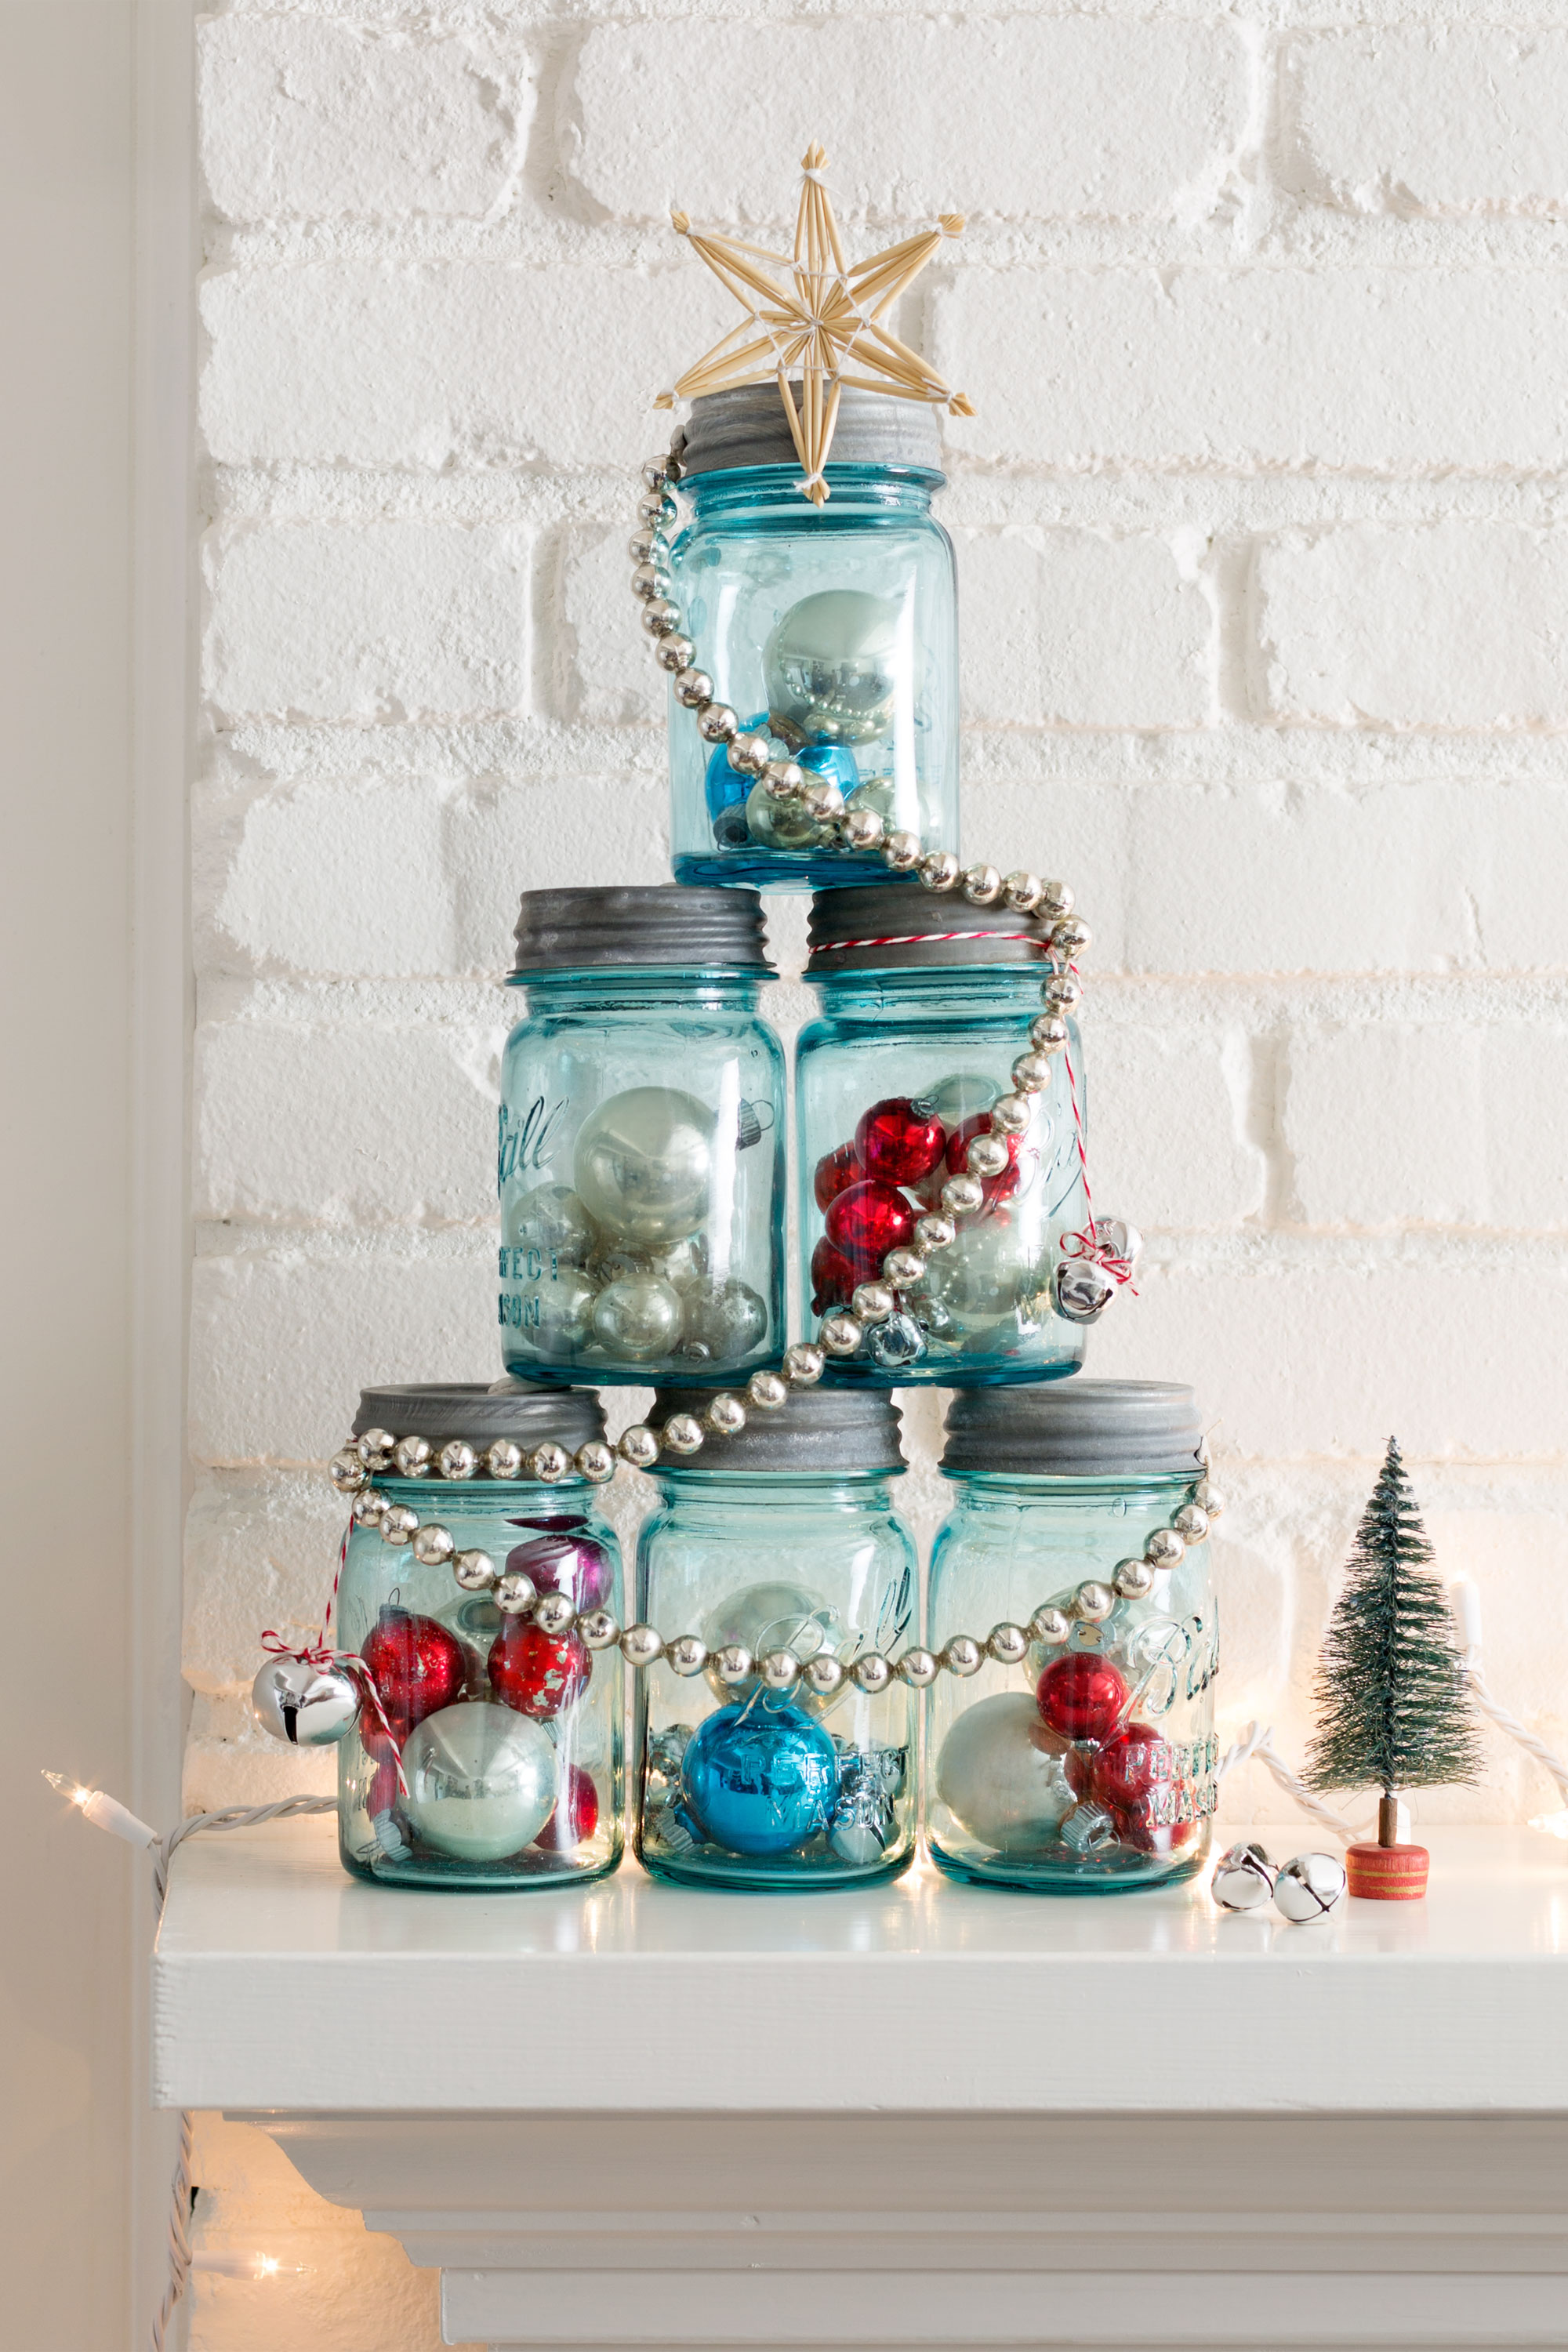 Diy homemade christmas decorations decor